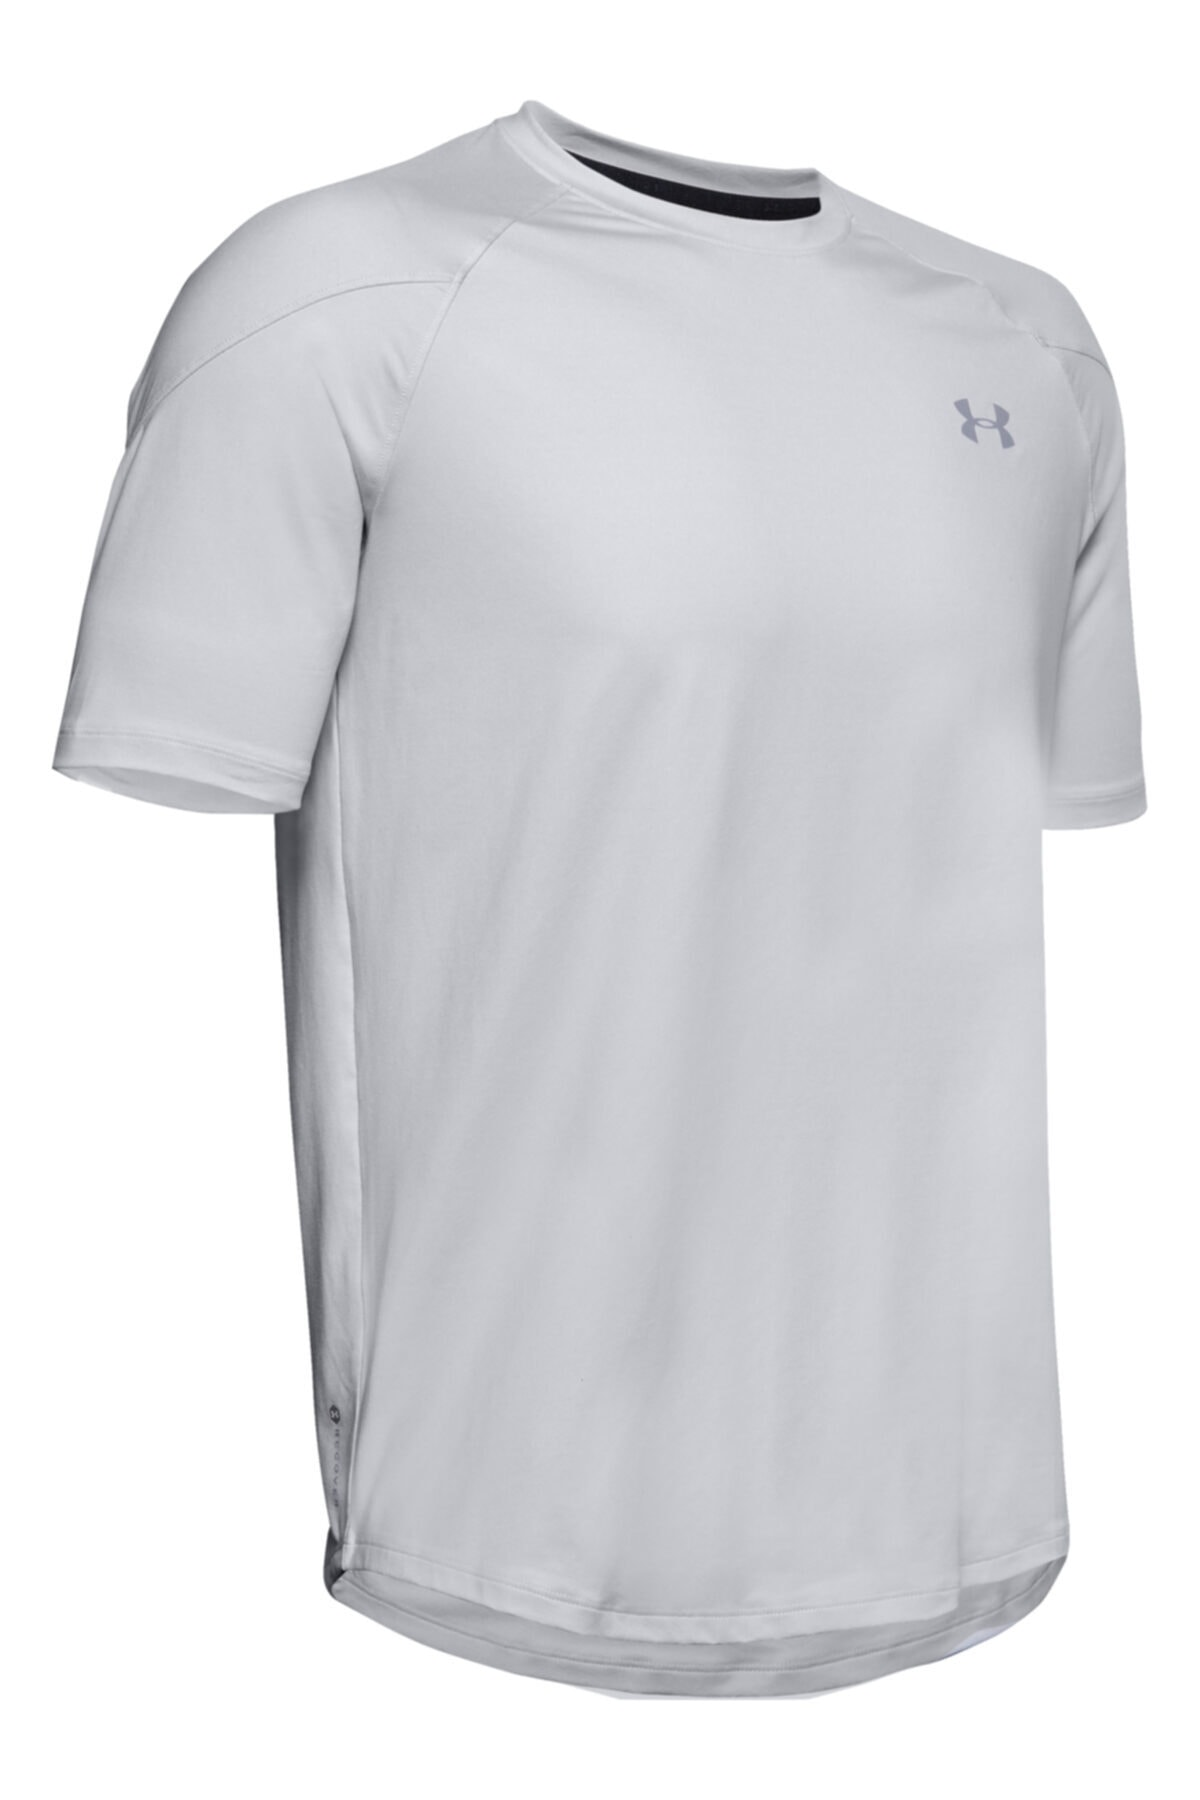 Under Armour Erkek Spor T-Shirt - Recover Ss - 1351569-014 1